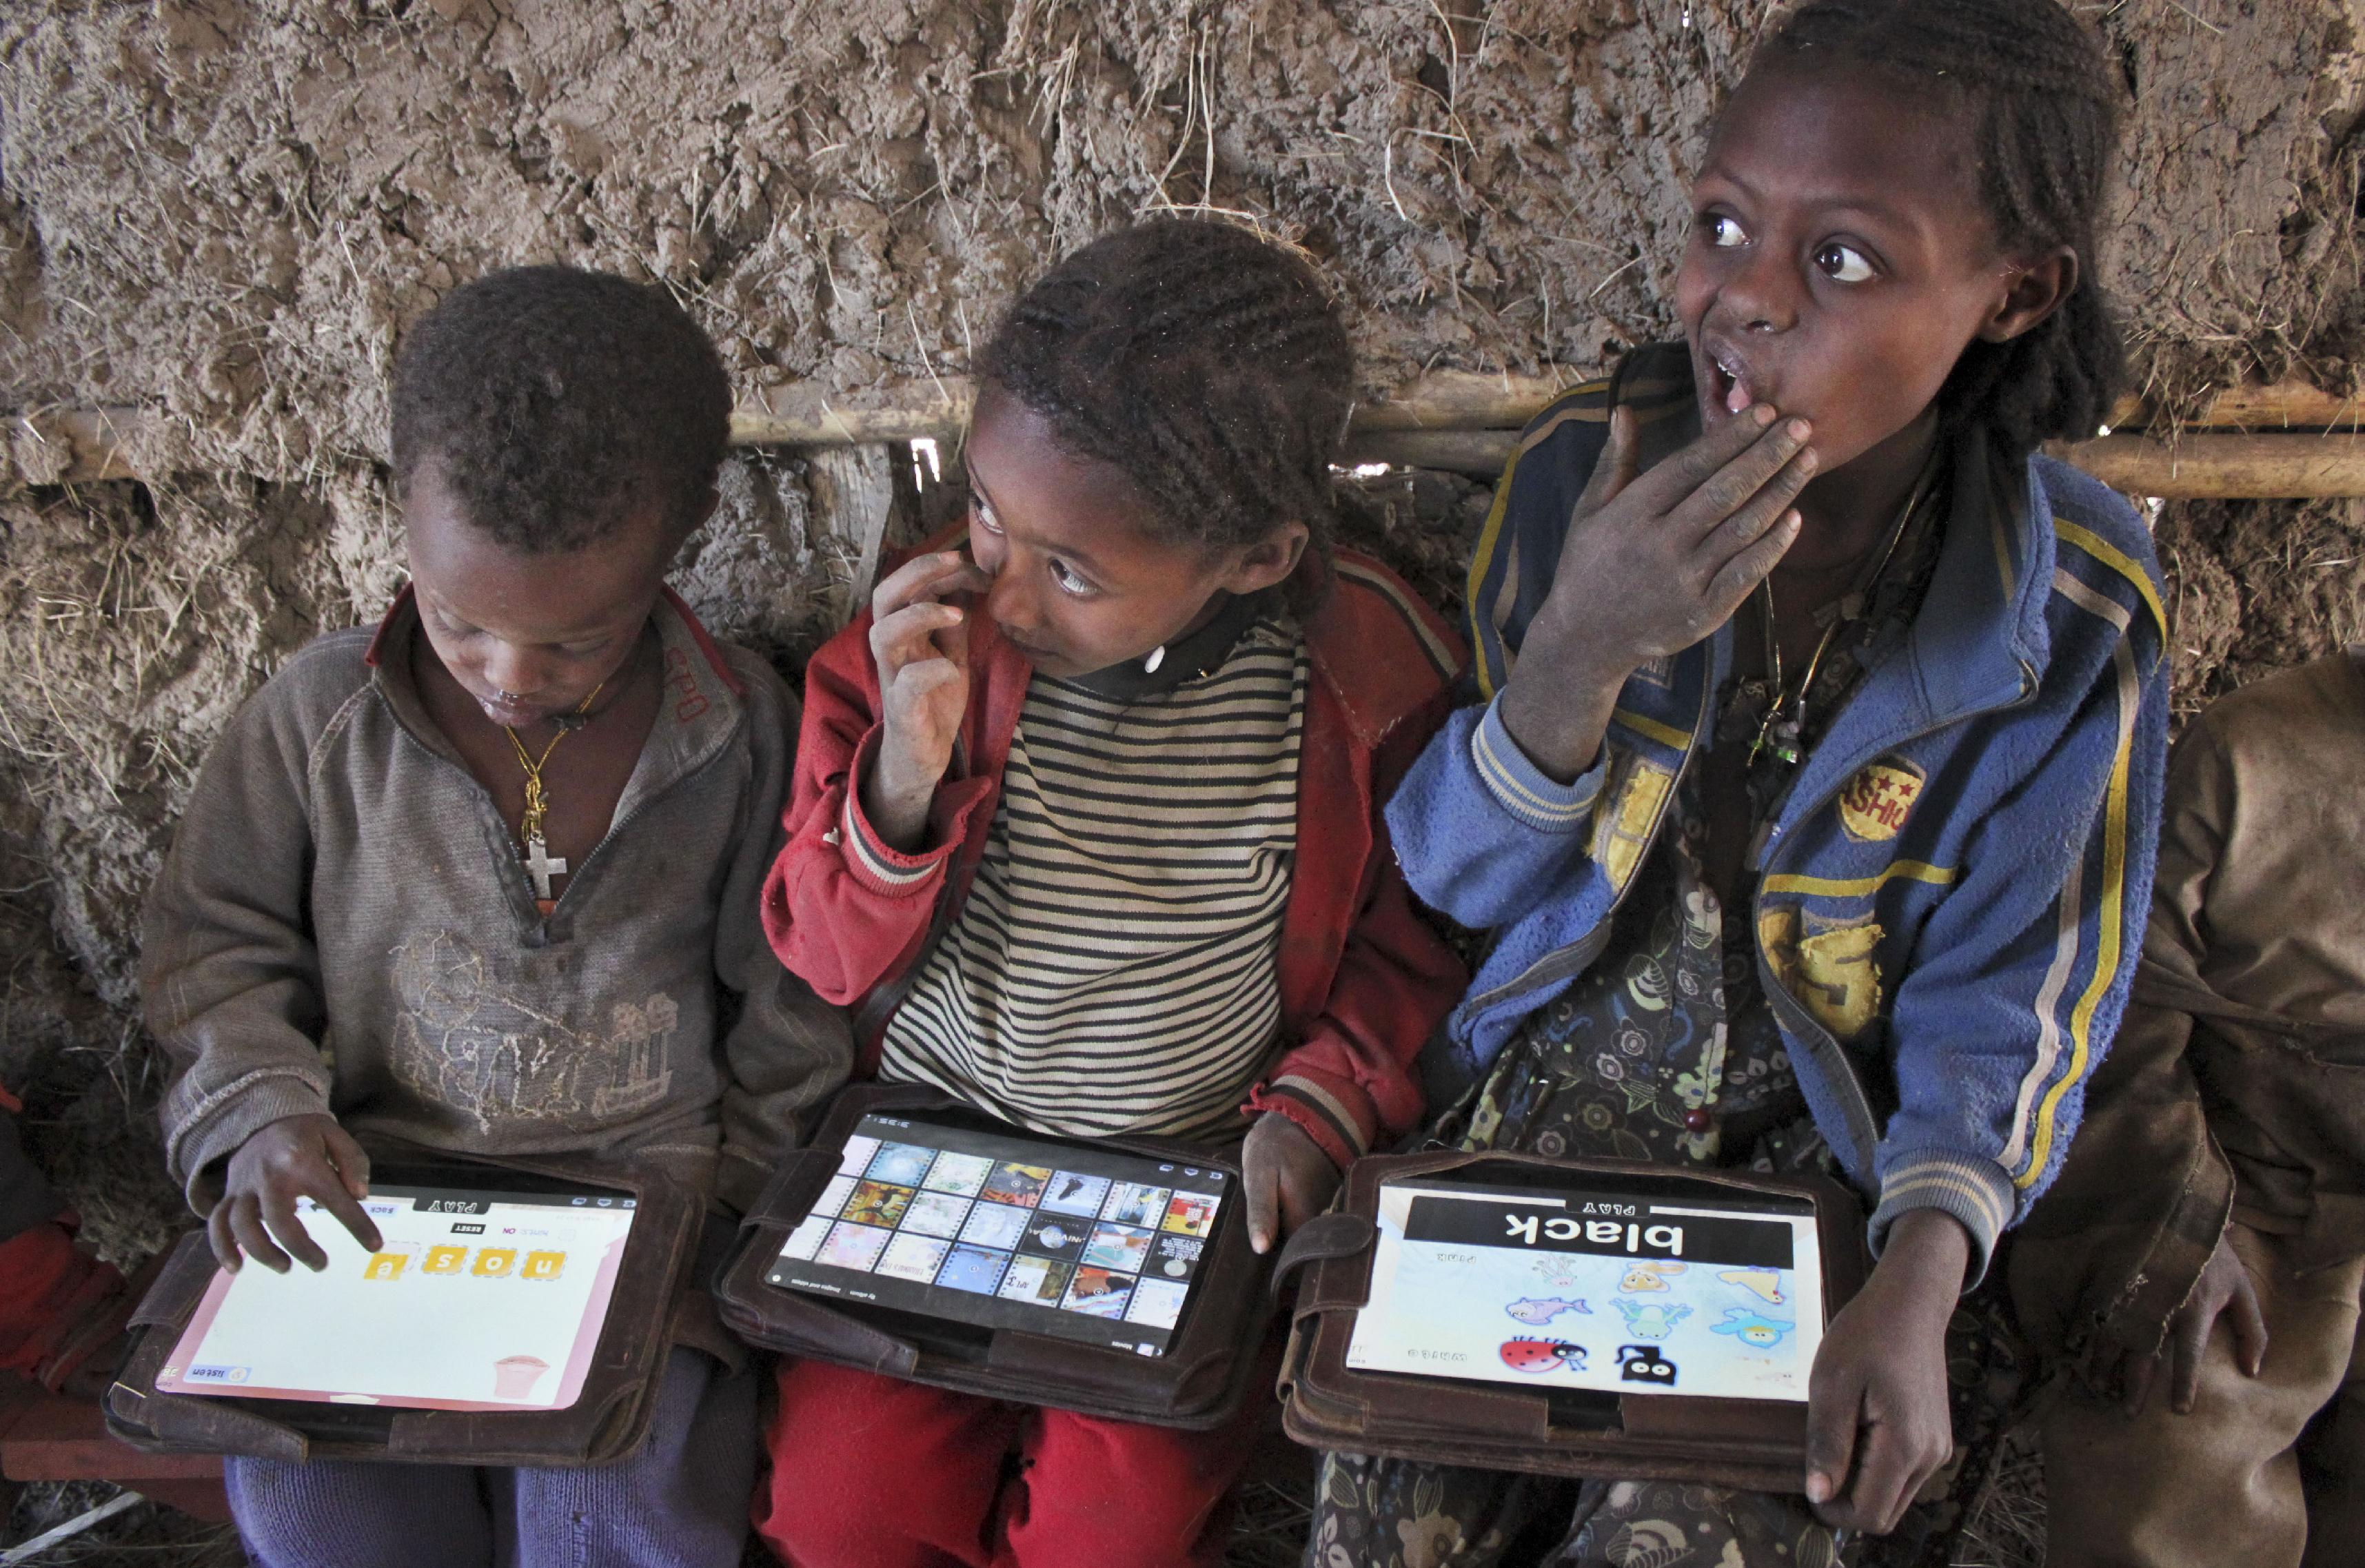 In this photo taken Tuesday, Nov. 27, 2012, children play with tablet computers given to them by the One Laptop Per Child project in the village of Wenchi, Ethiopia. The project gave tablets to the children in the poor, illiterate village to see how much the children could teach themselves and now many kids can recite the English alphabet and spell words in English. (AP Photo/Jason Straziuso)